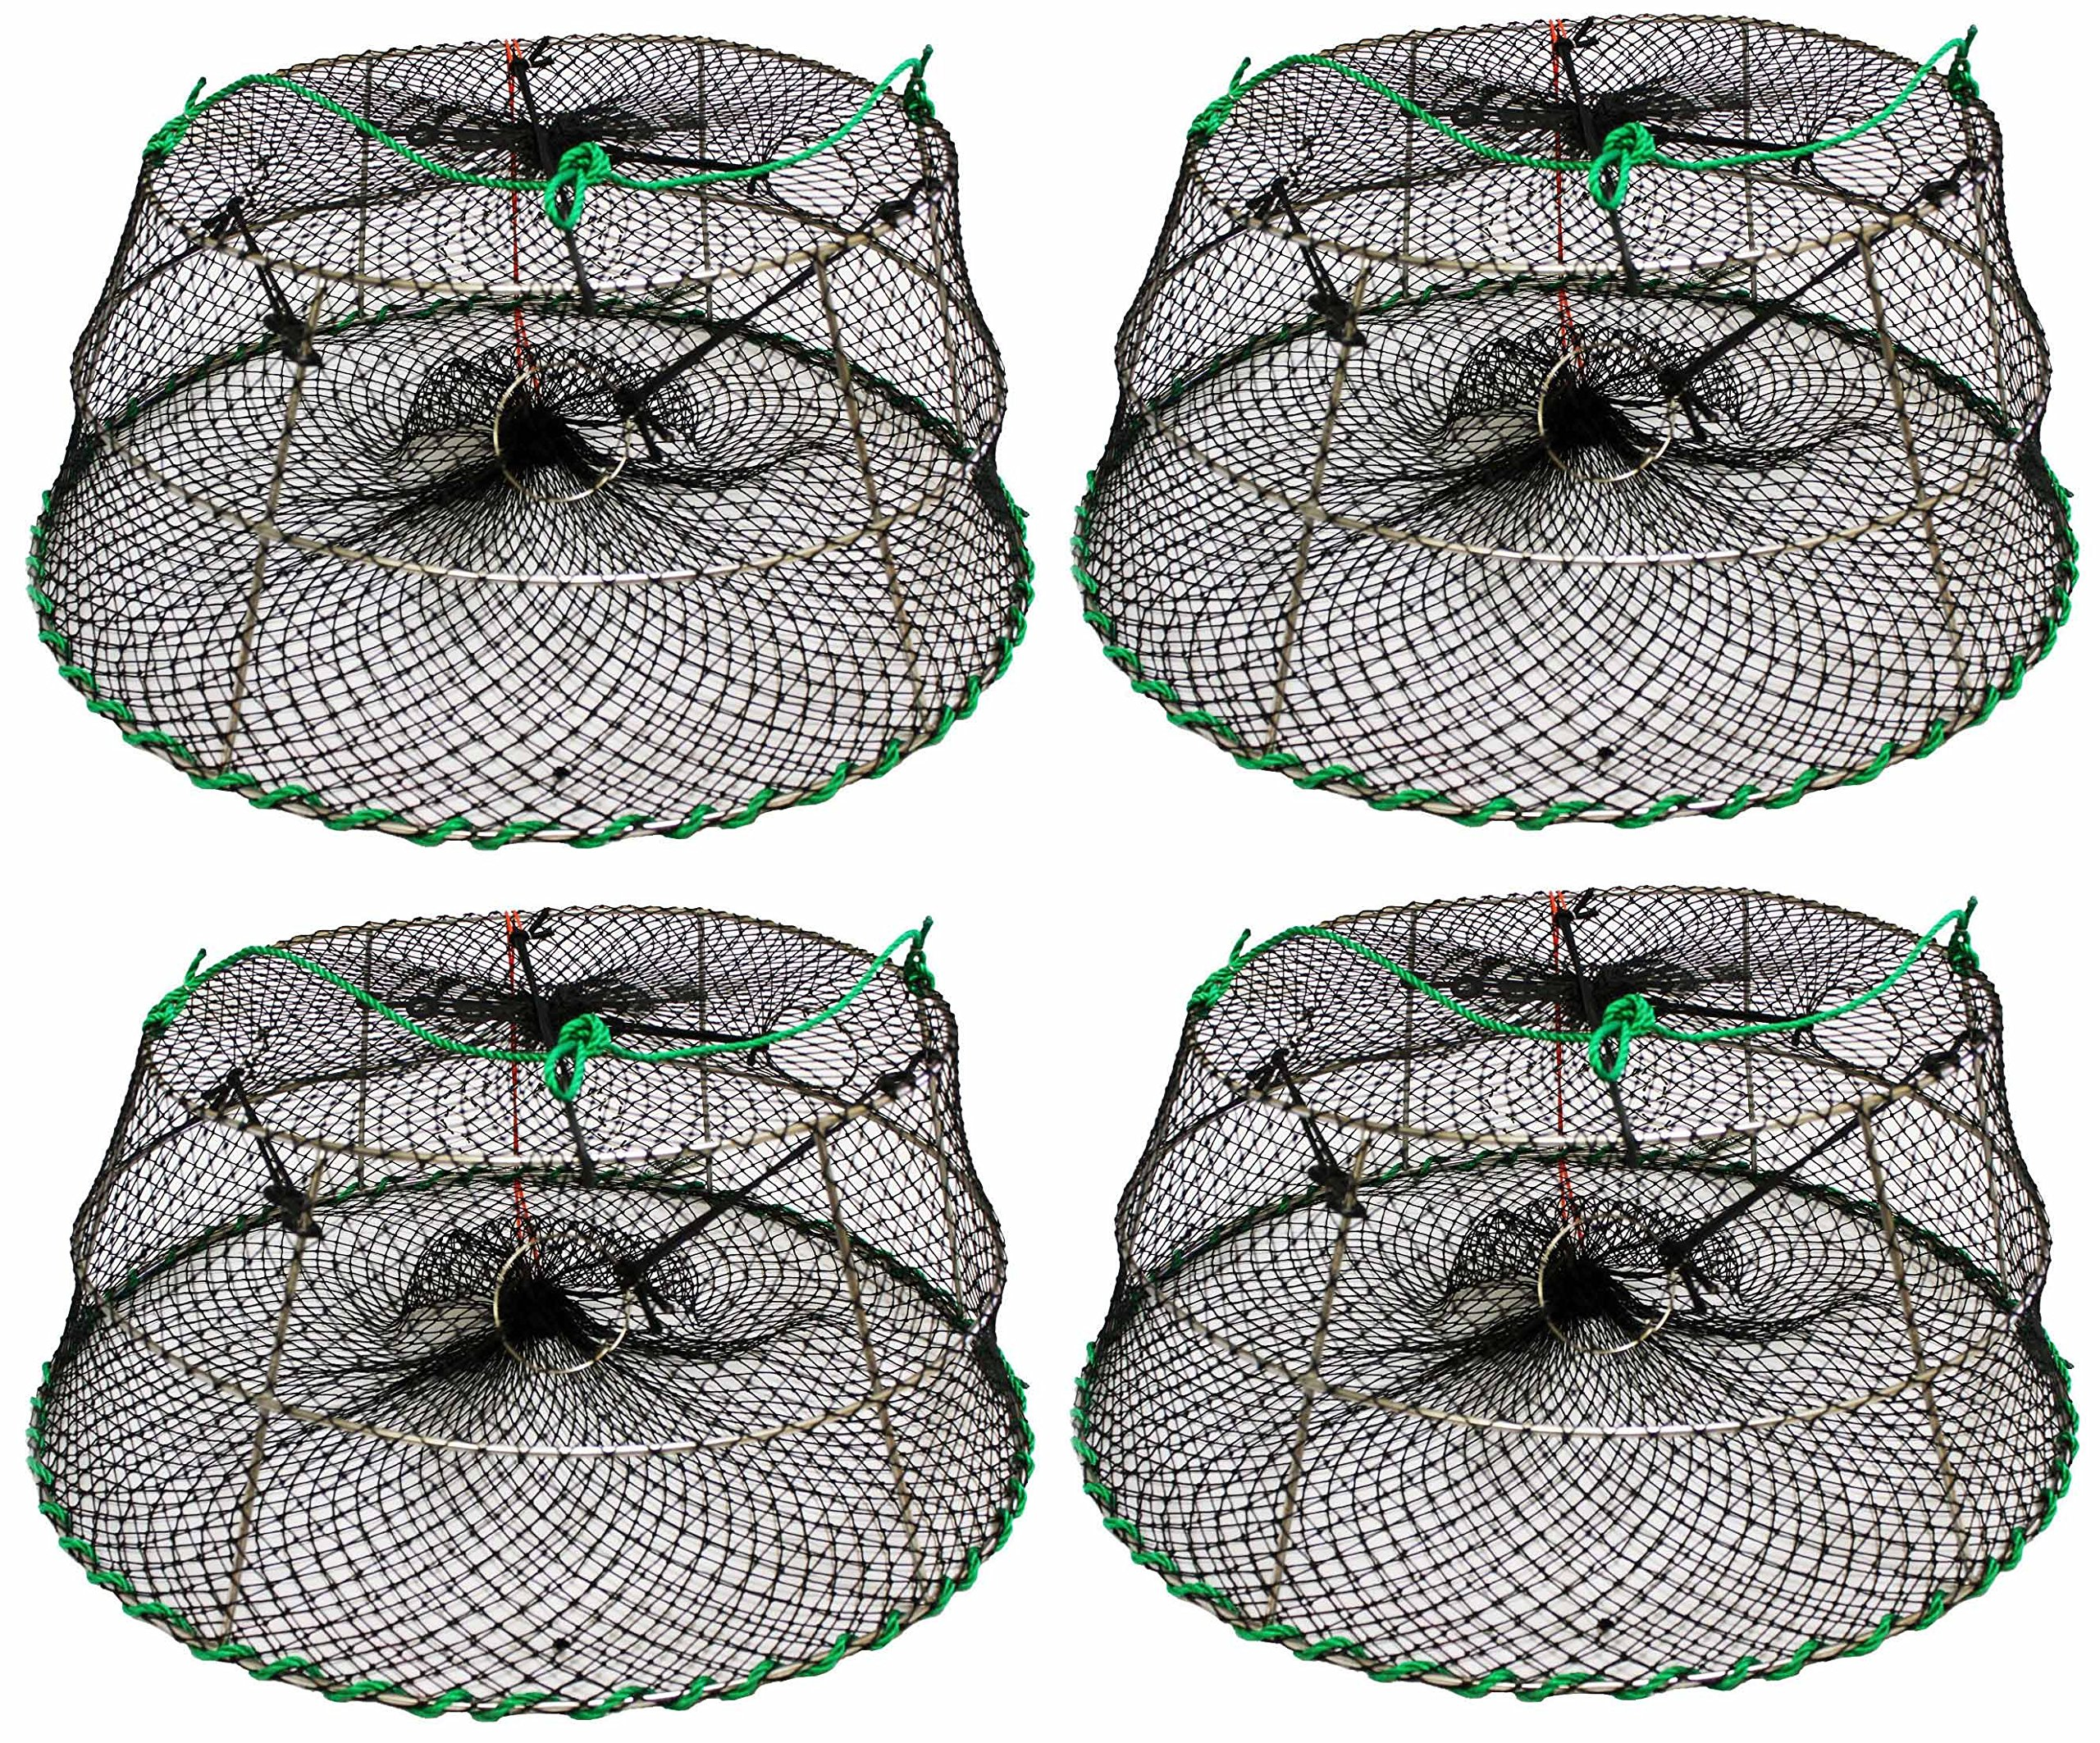 4-Pack of KUFA Sports Tower Style Stainless Steel Prawn trap (Trap Size: Ø30''xØ20''x12''; Stretched Mesh size: 1-1/8'') CT76x4